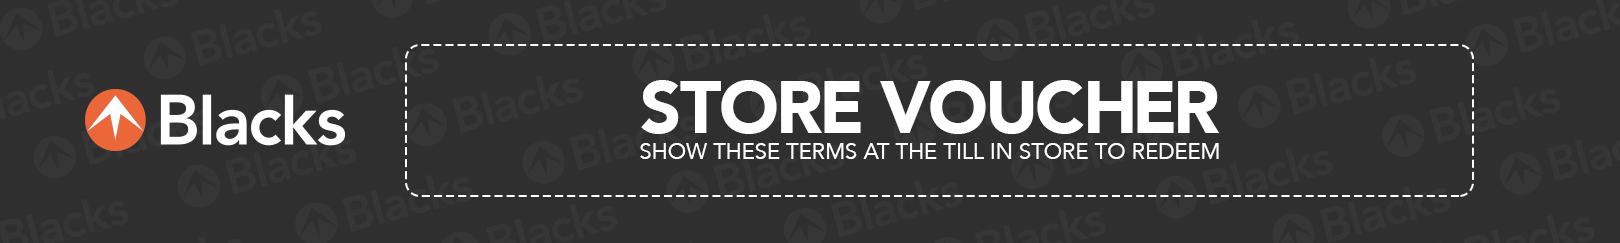 Blacks | Store Voucher (Show this in store at the till to redeem)